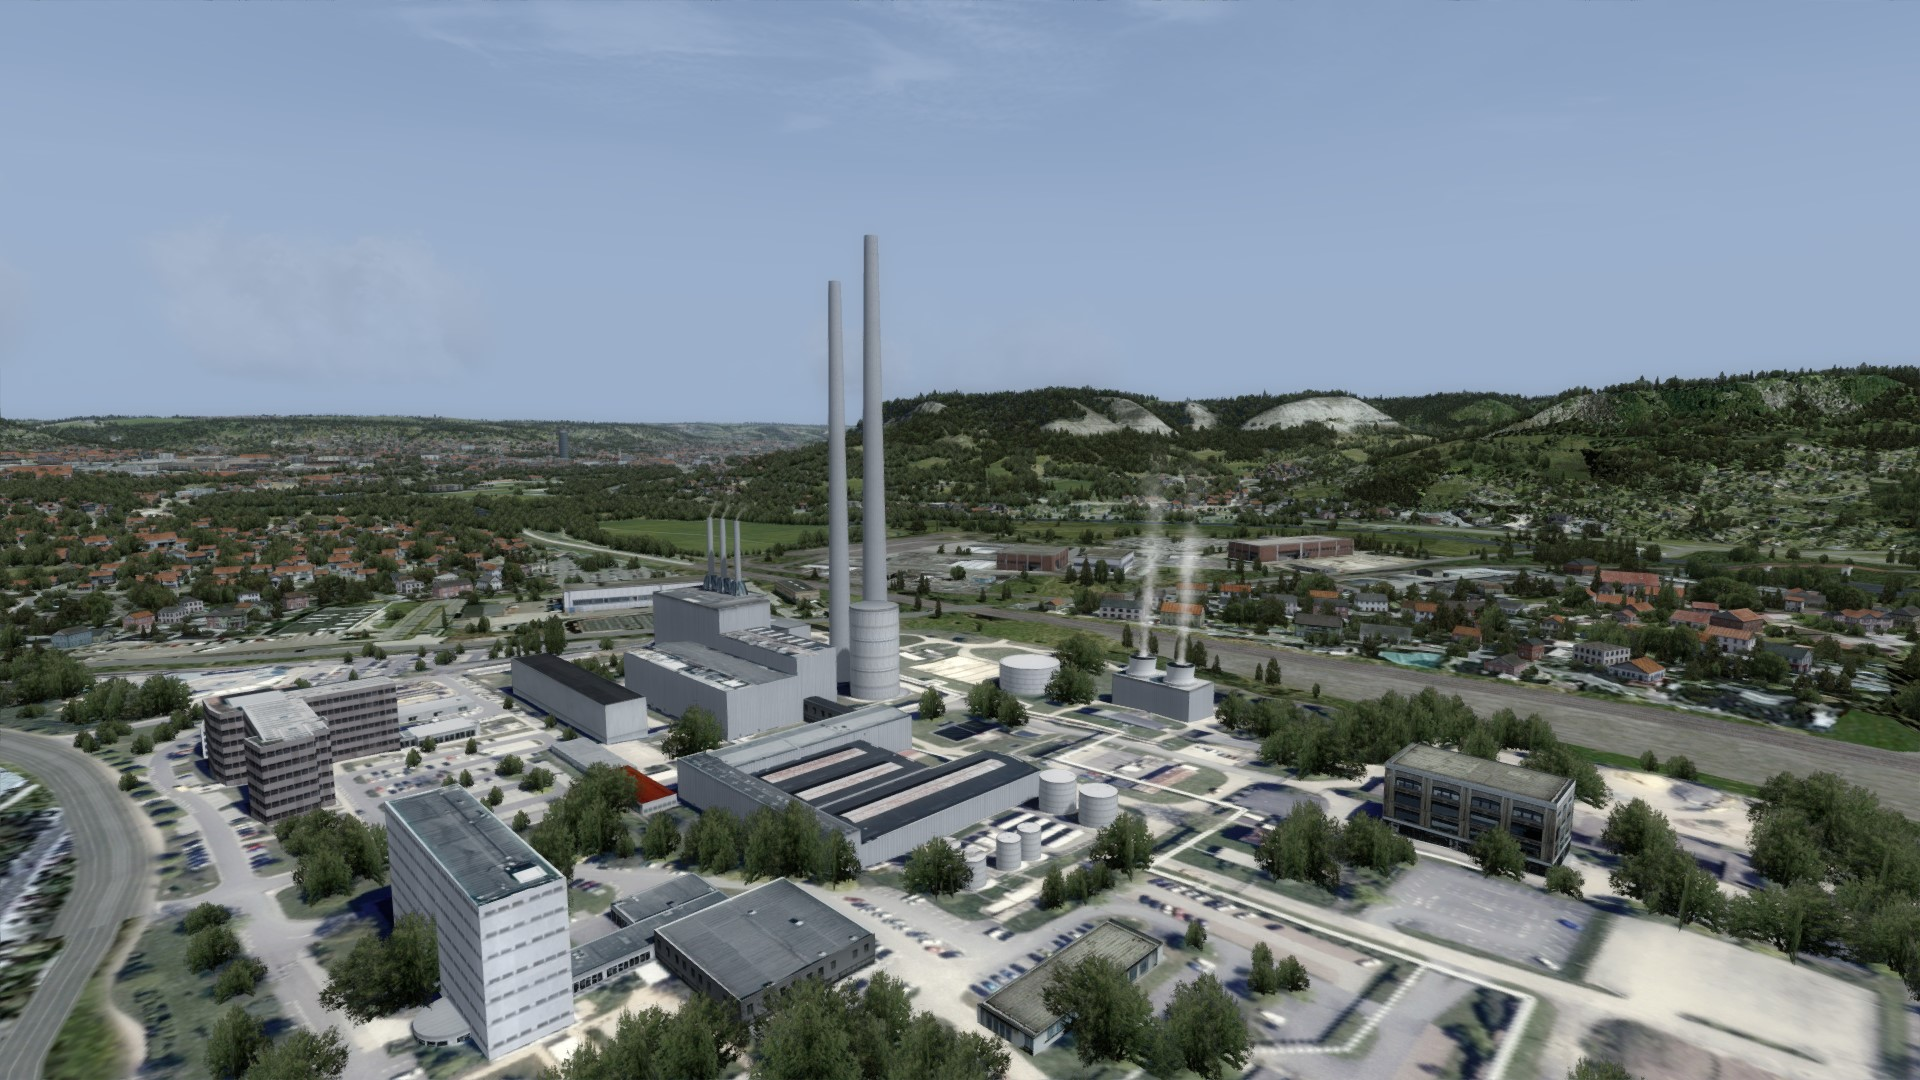 p3dv4_jena_city_update_1.jpg